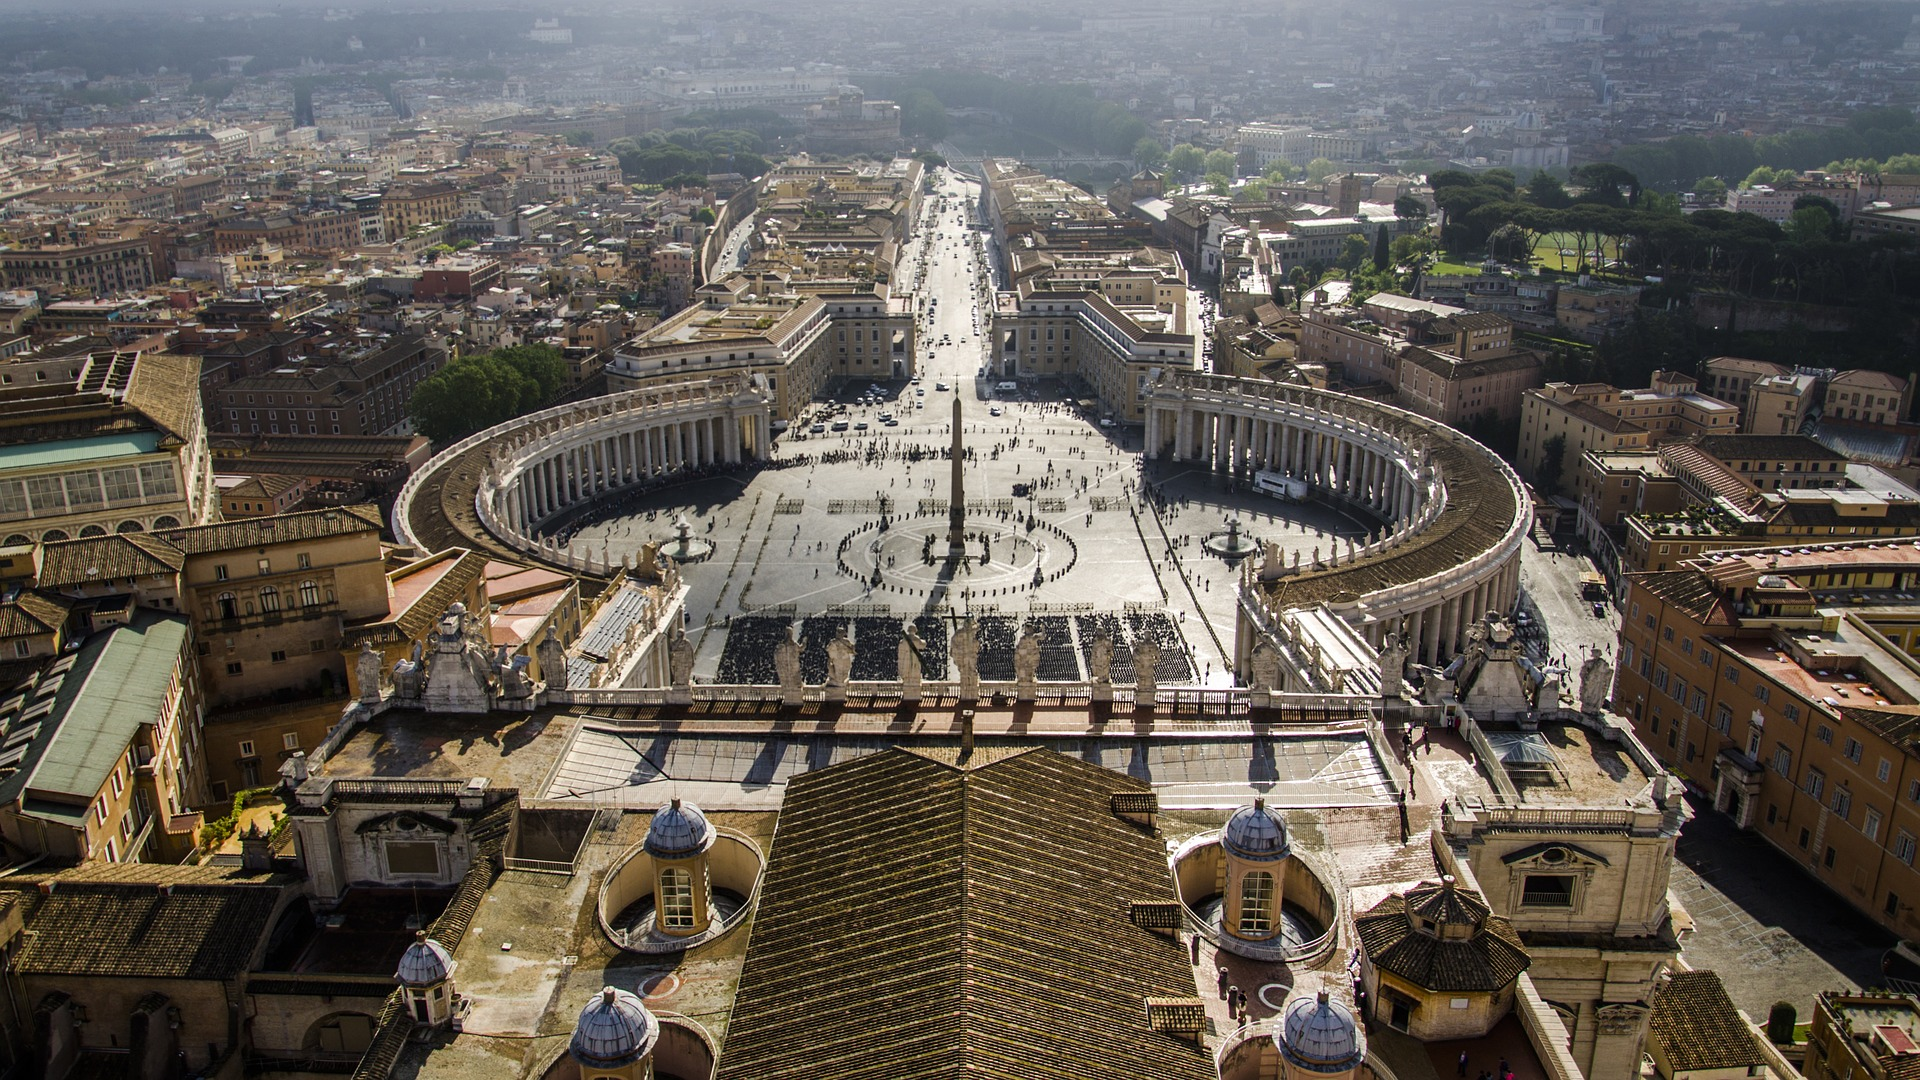 View of St. Peter's Square, Vatican City, Rome